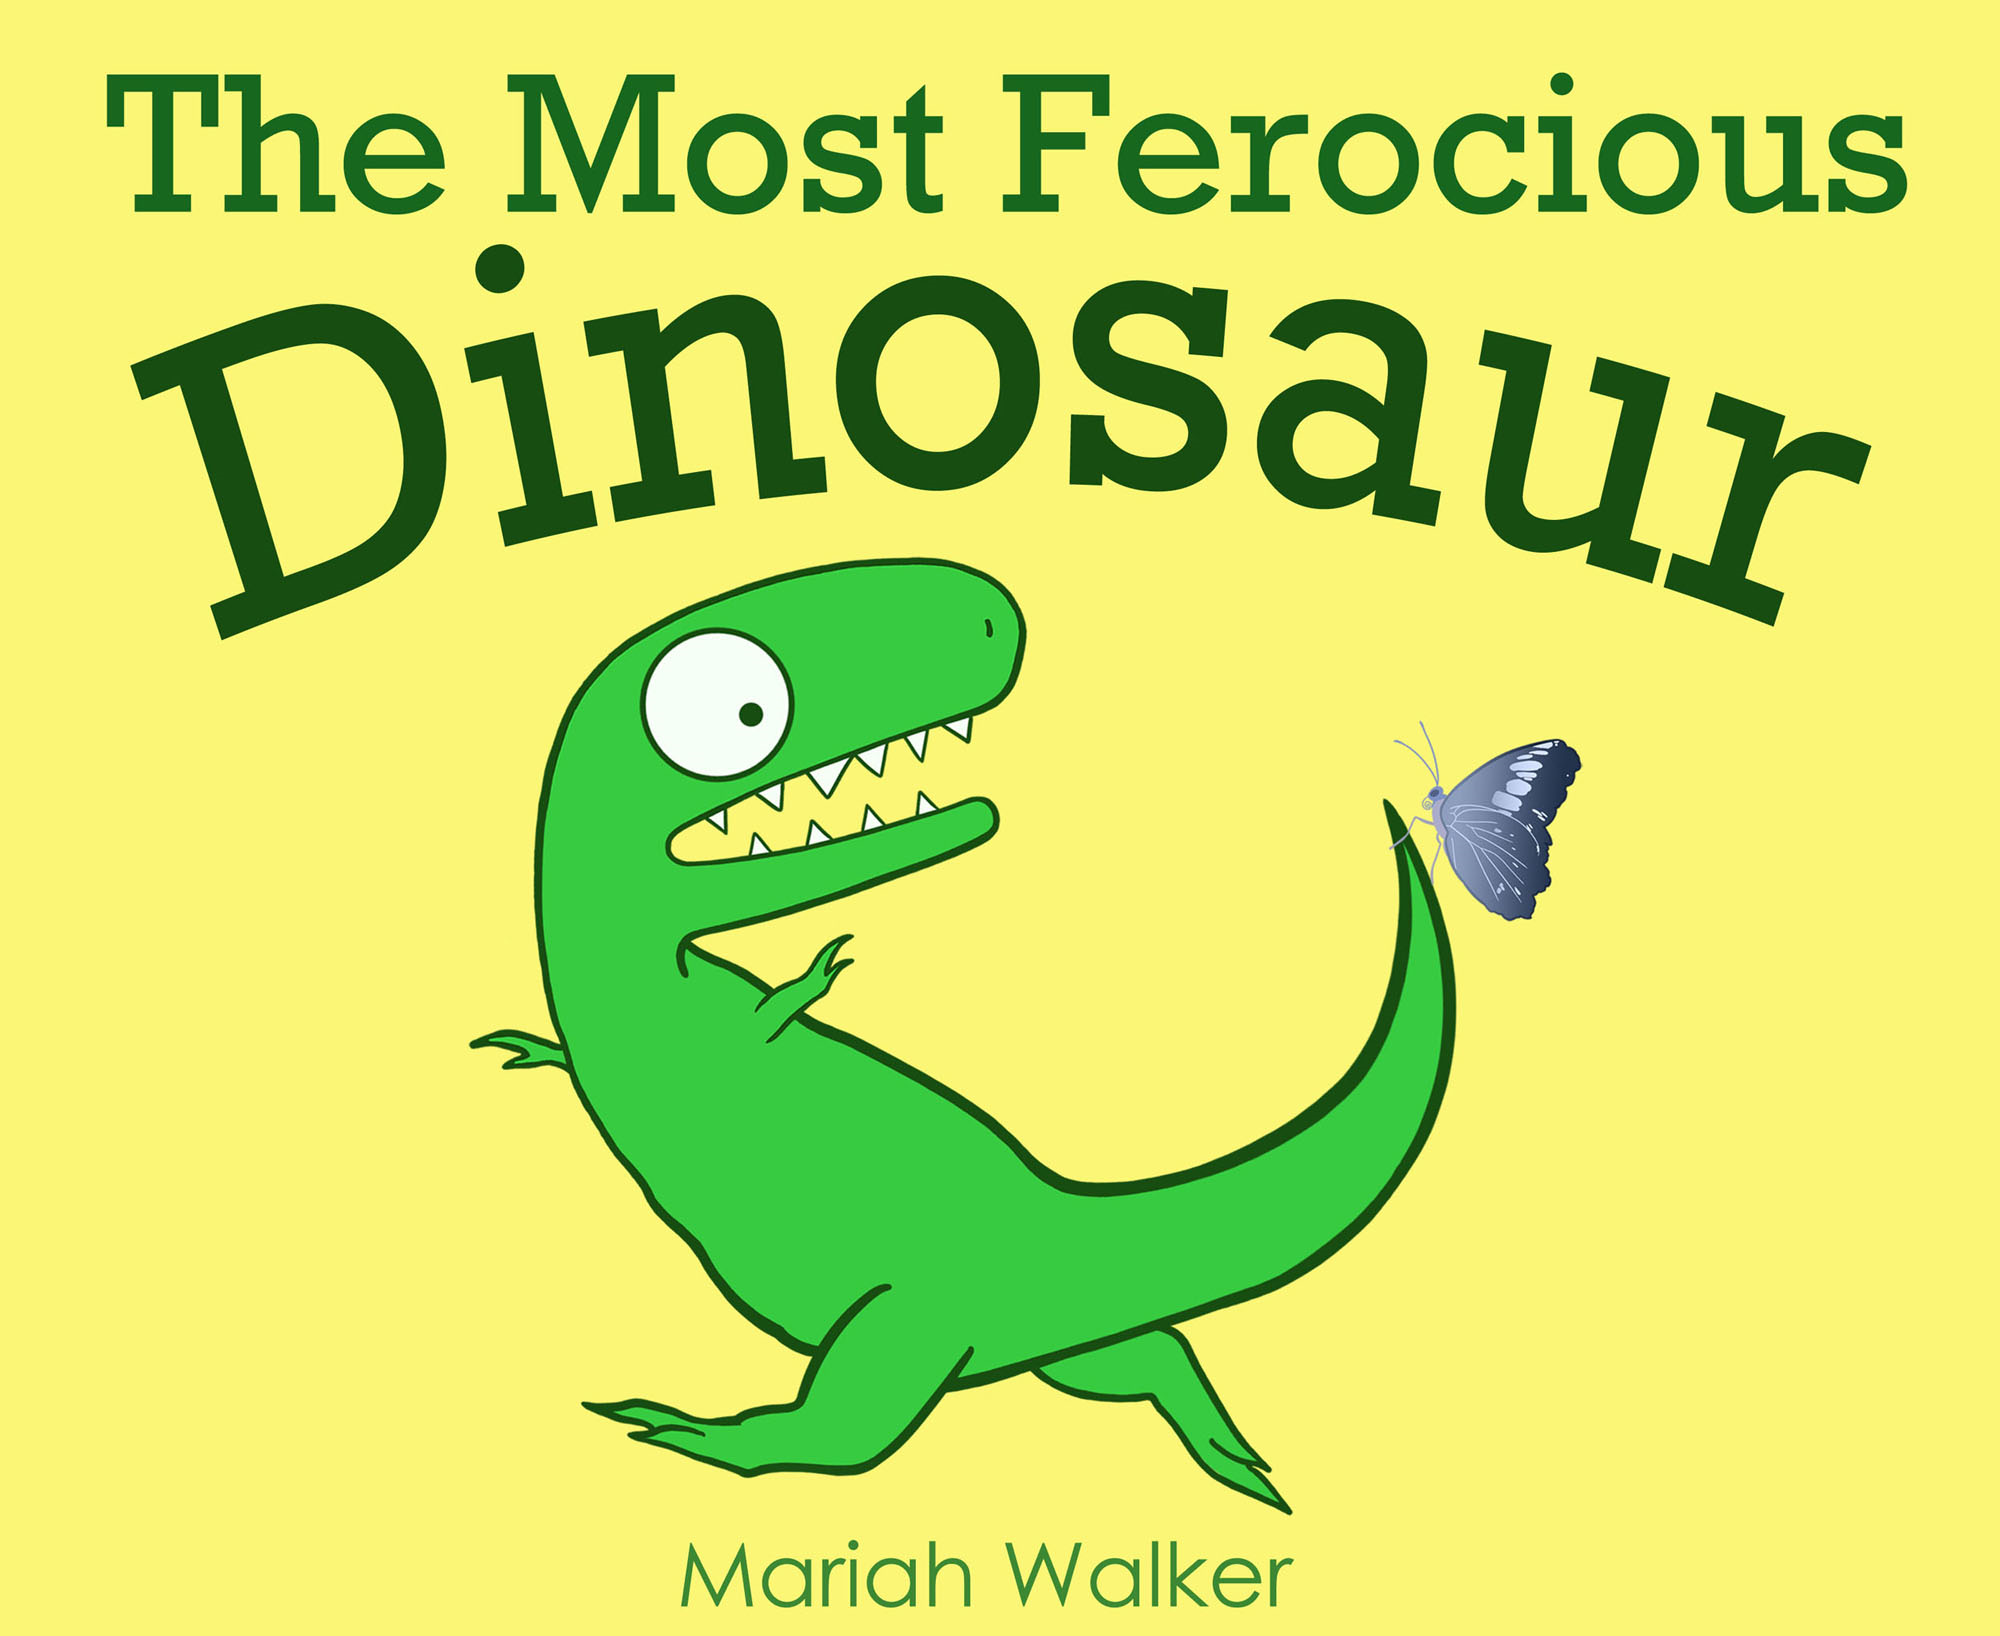 The Most Ferocious Dinosaur By: Mariah Walker